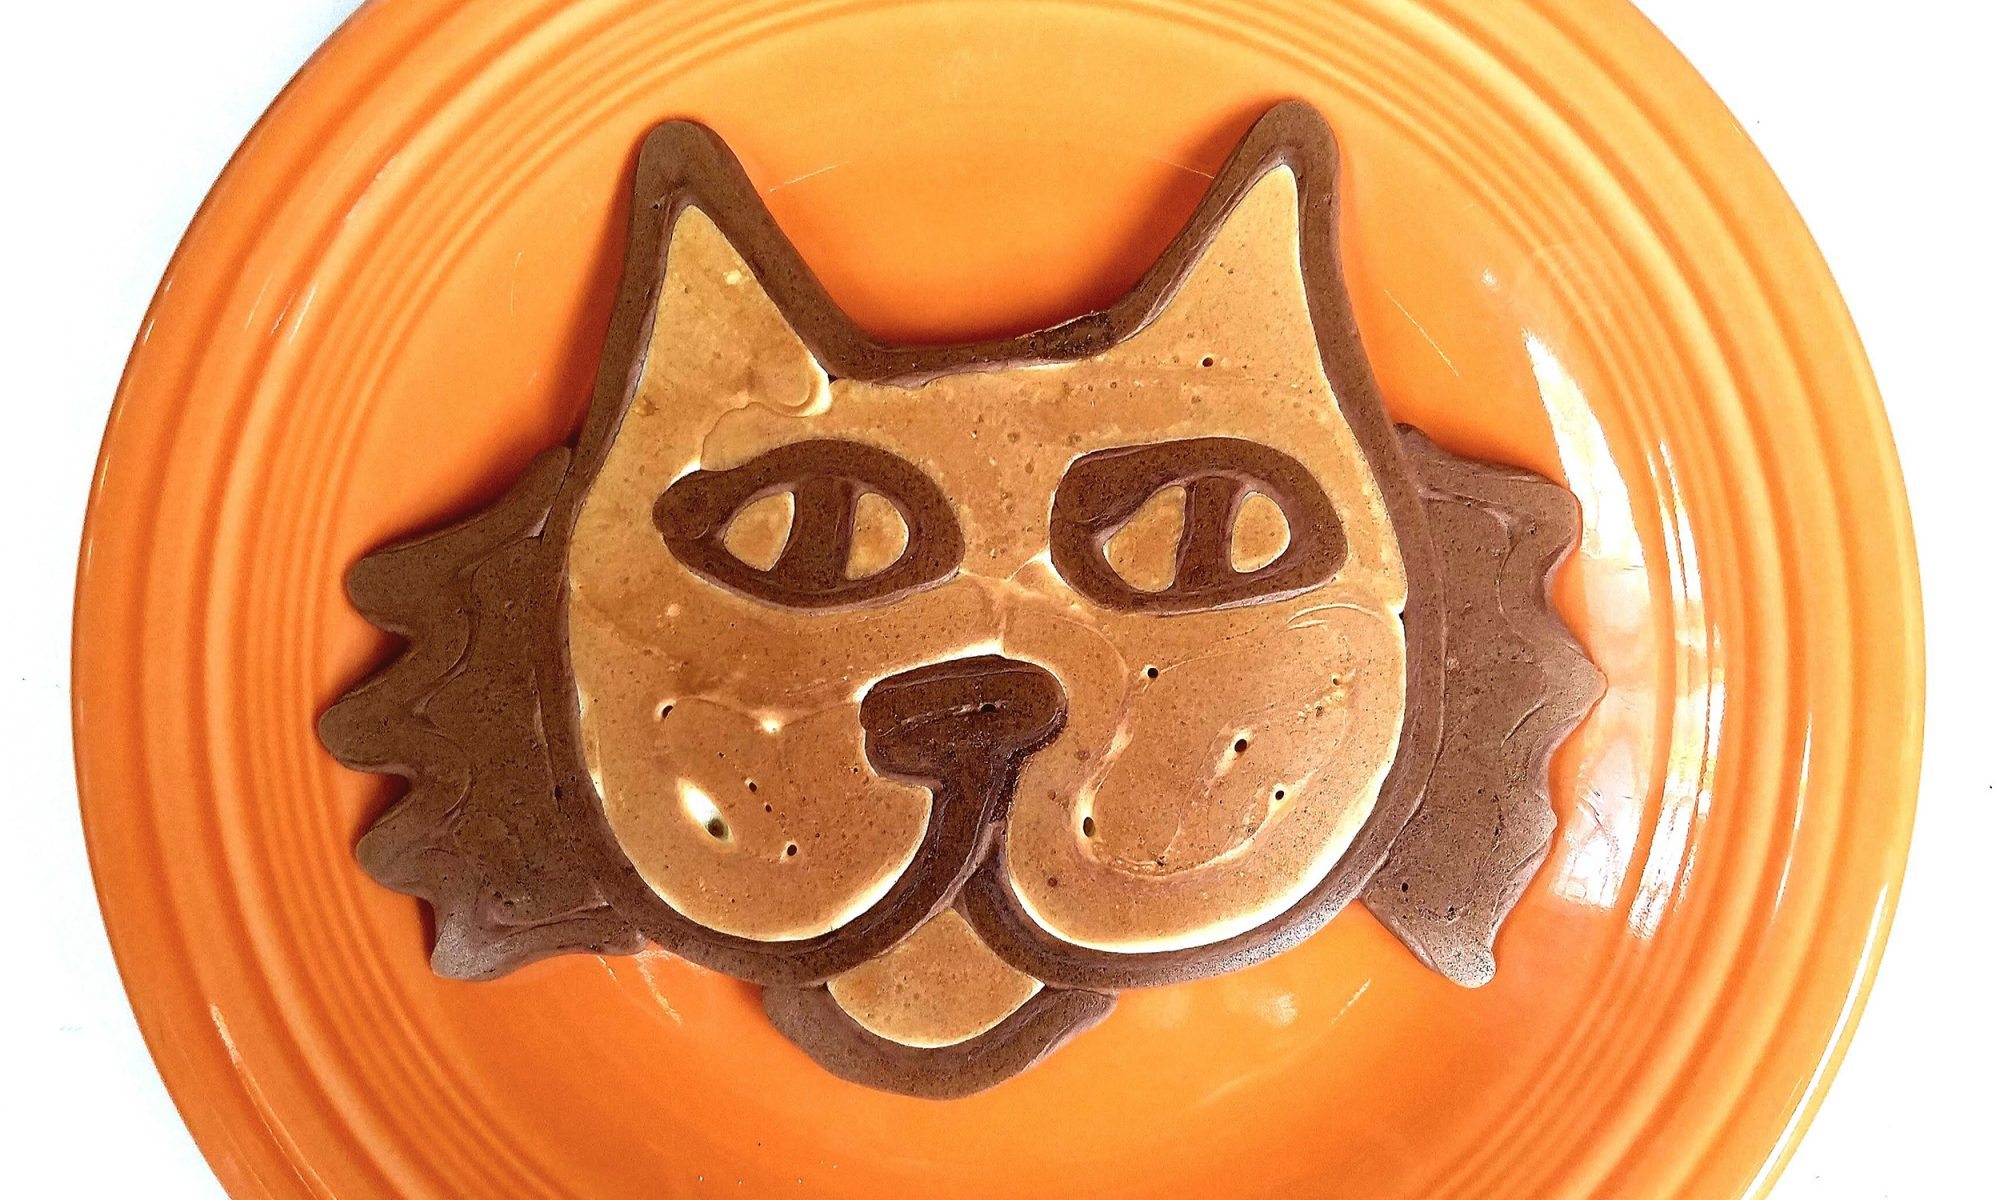 The Art of Making Animal Pancakes